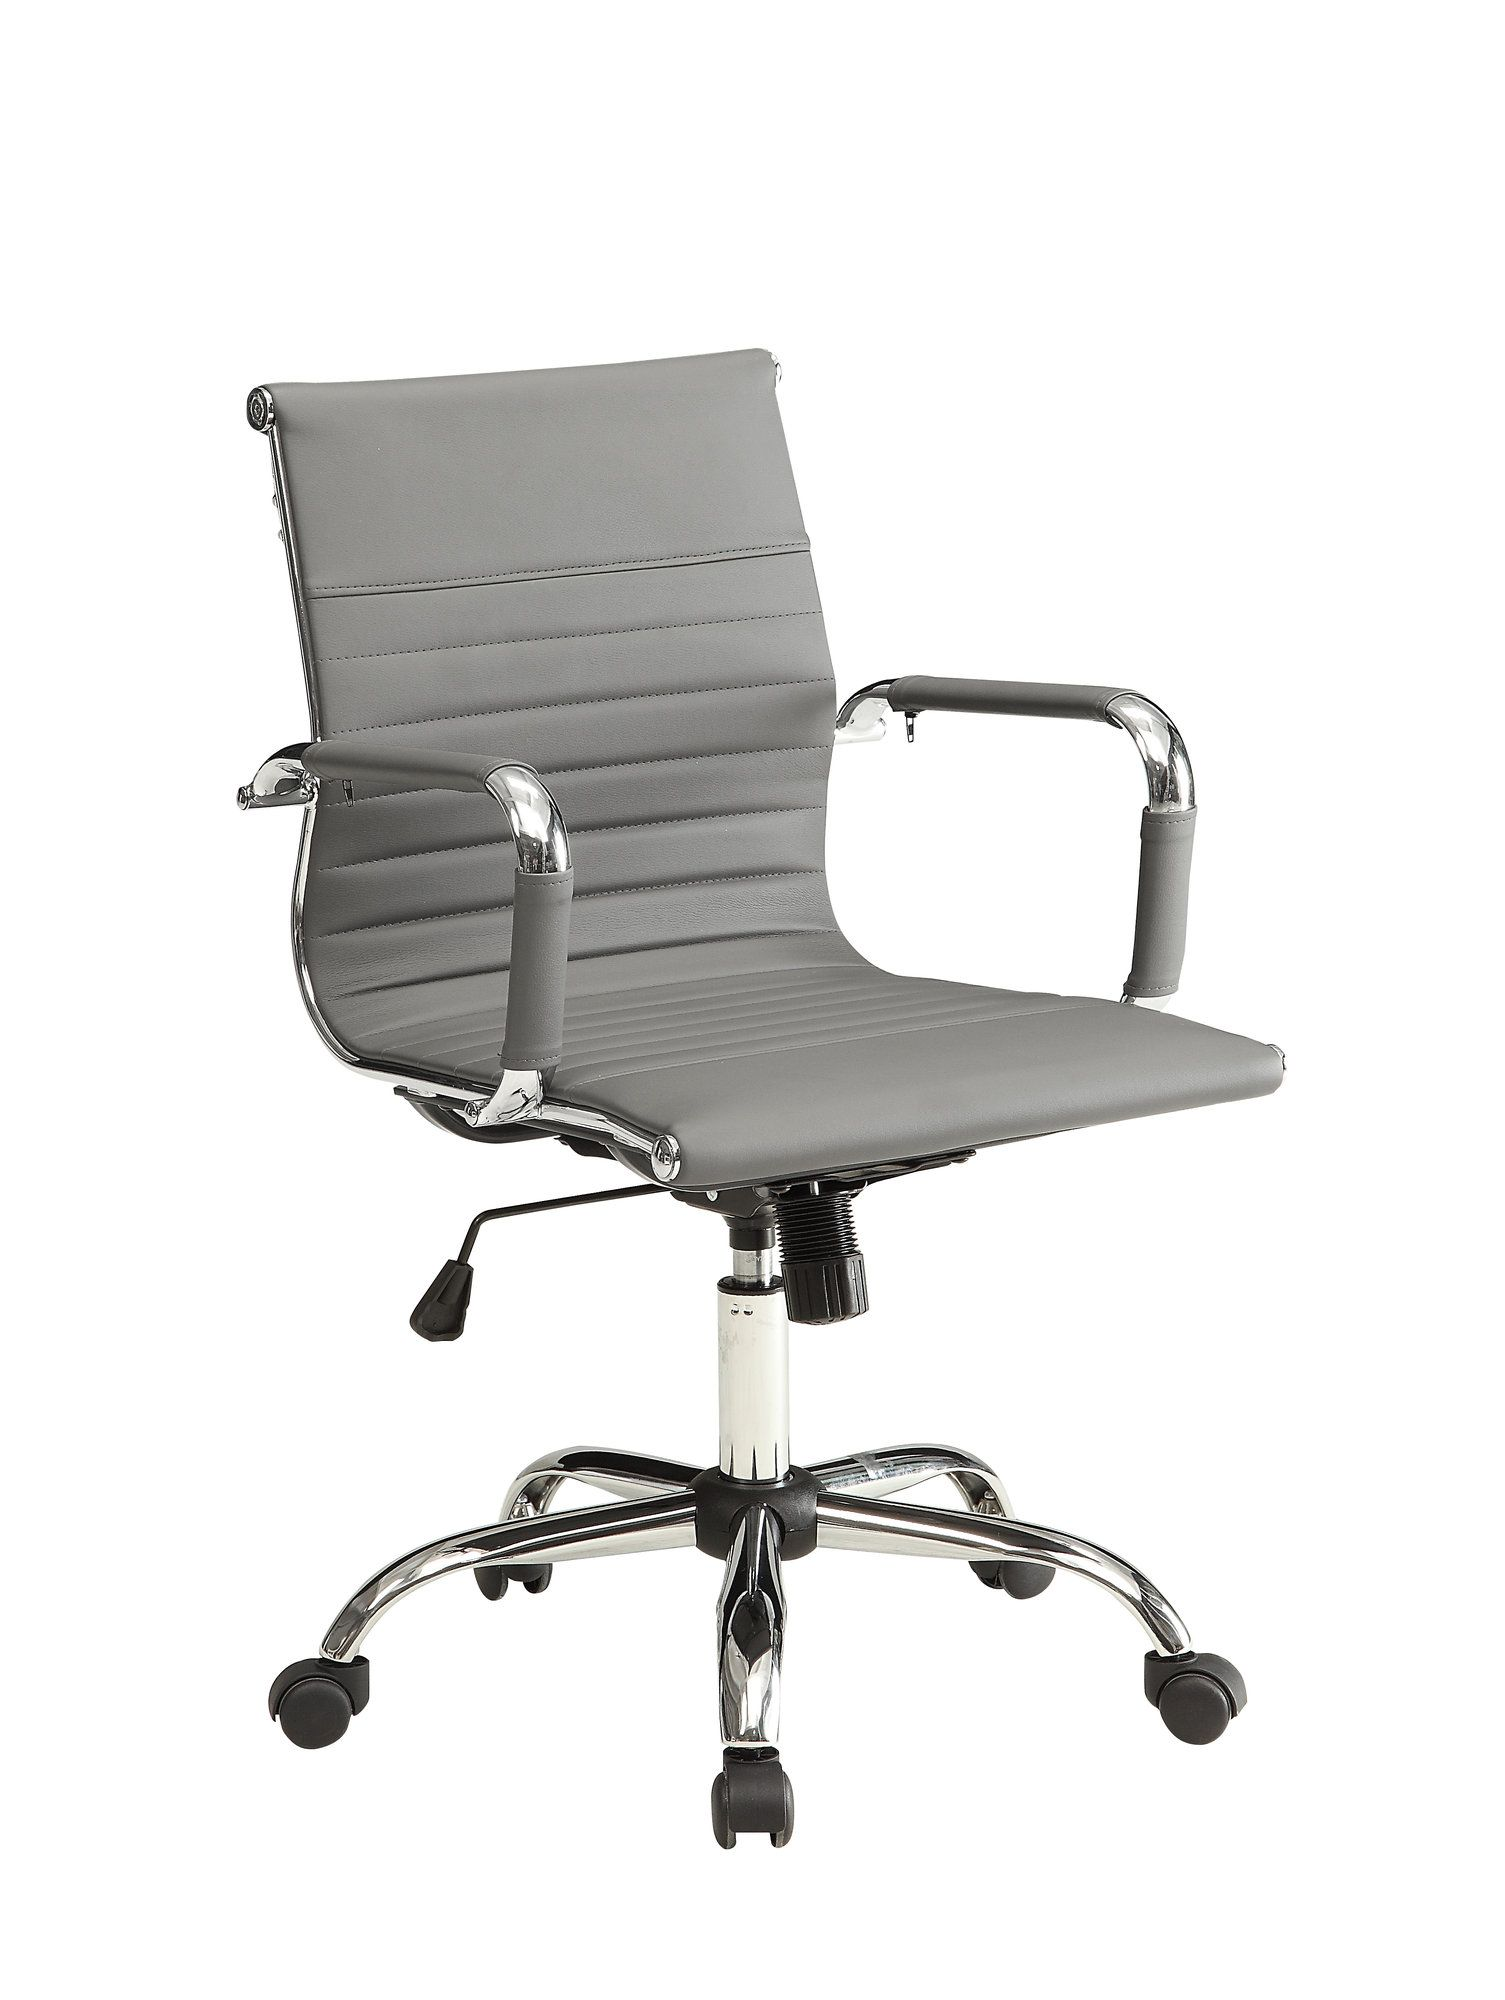 Alessandro Conference Chair Best office chair